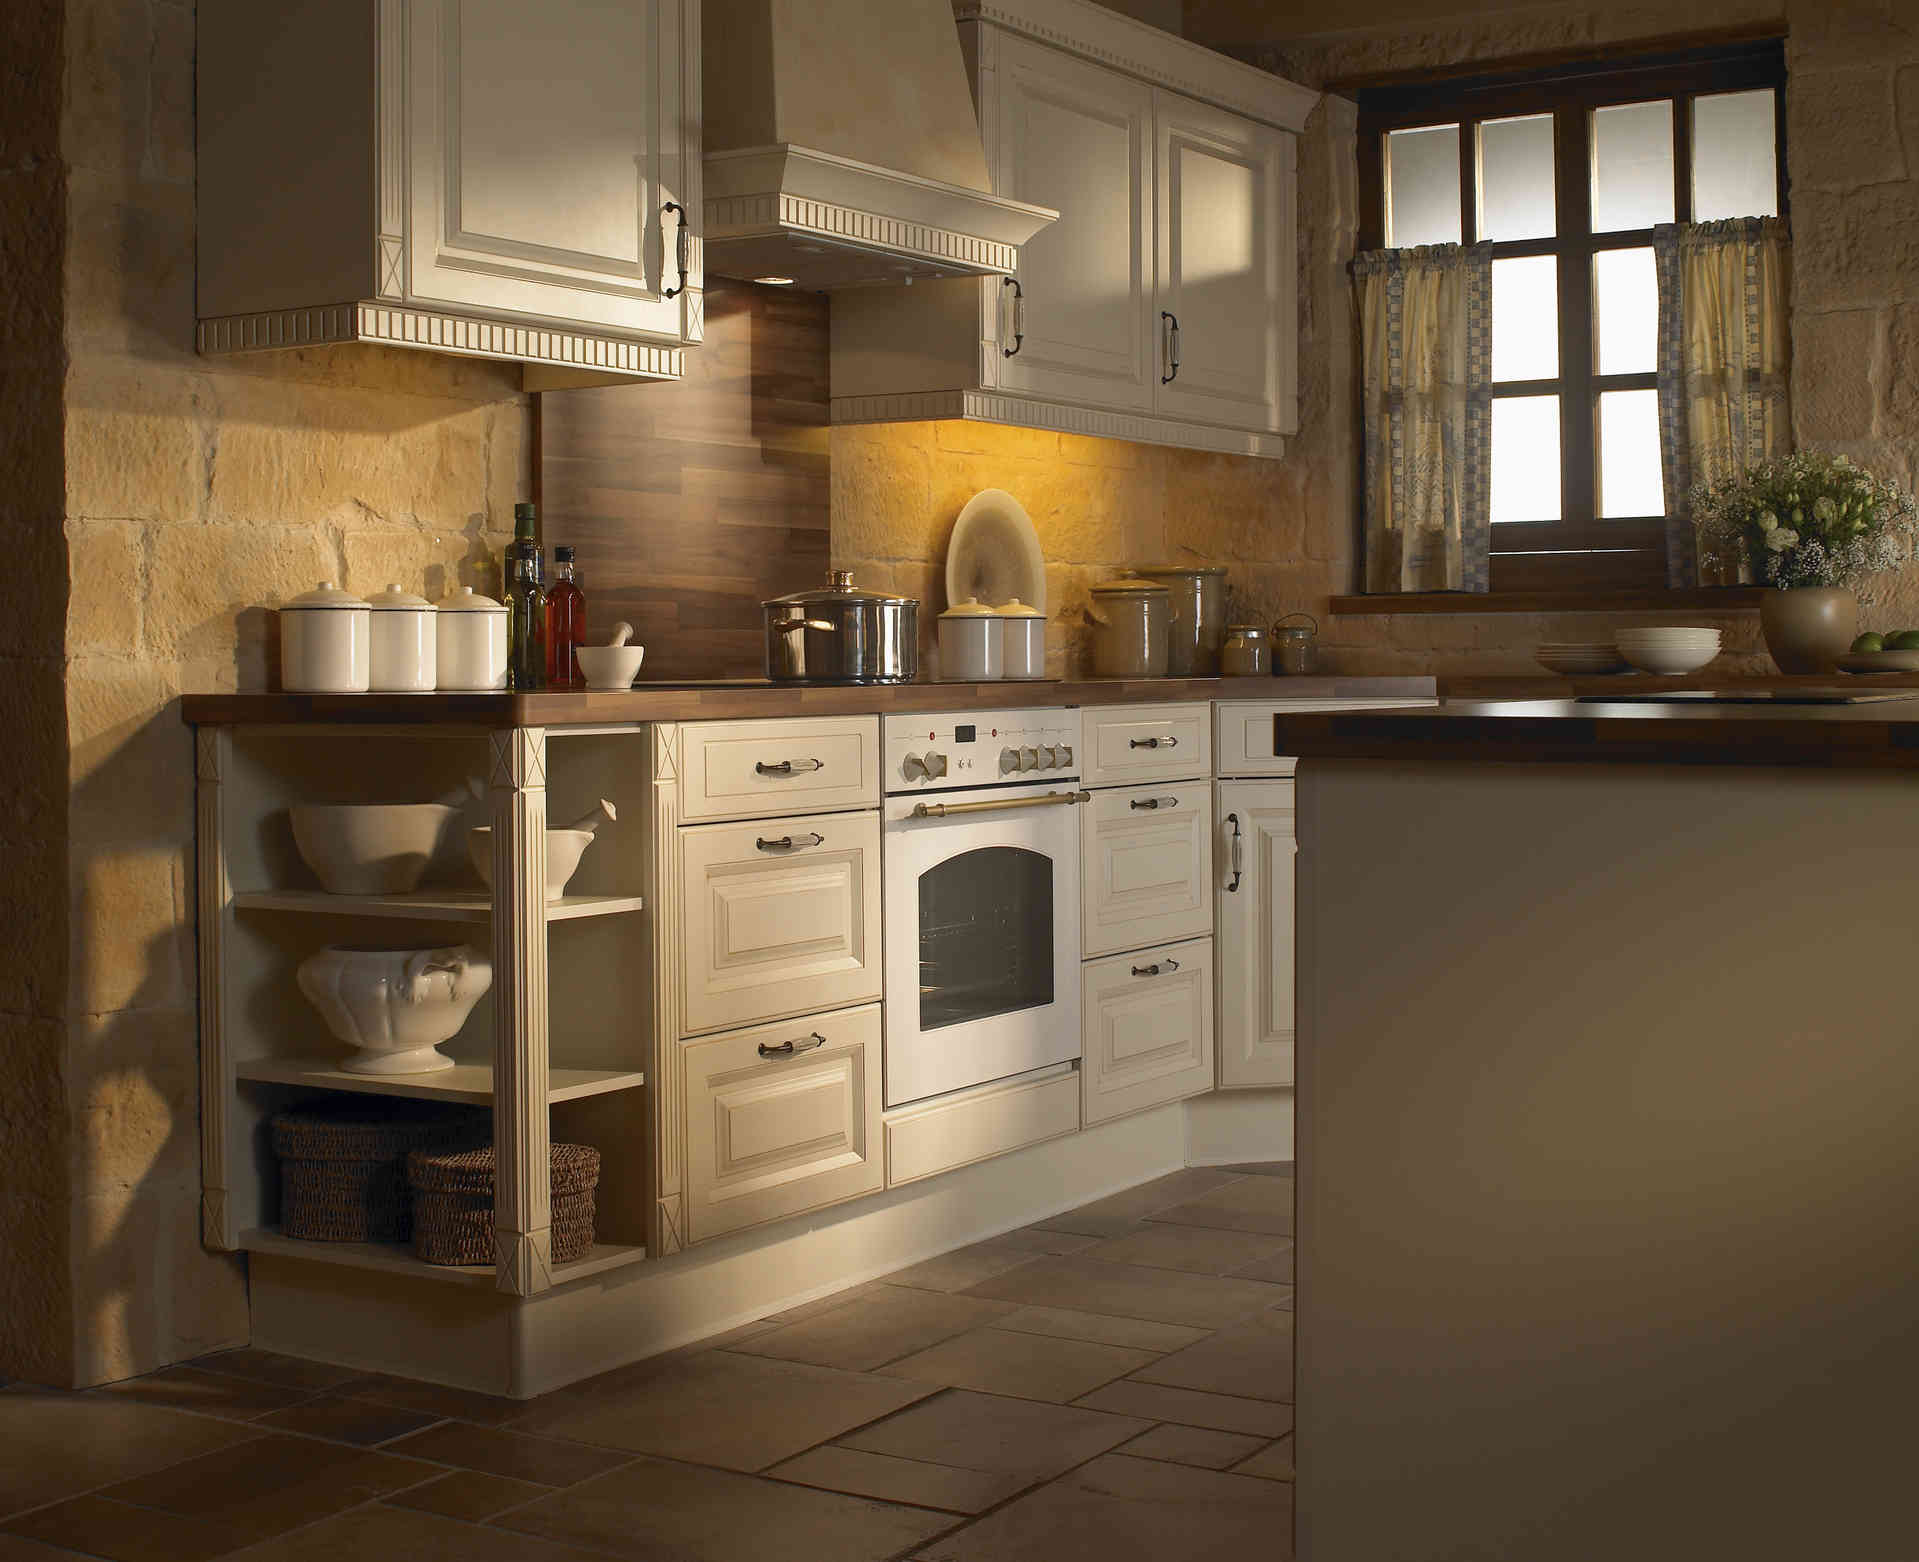 Things that Make Modular Kitchens Popular in the Market Today